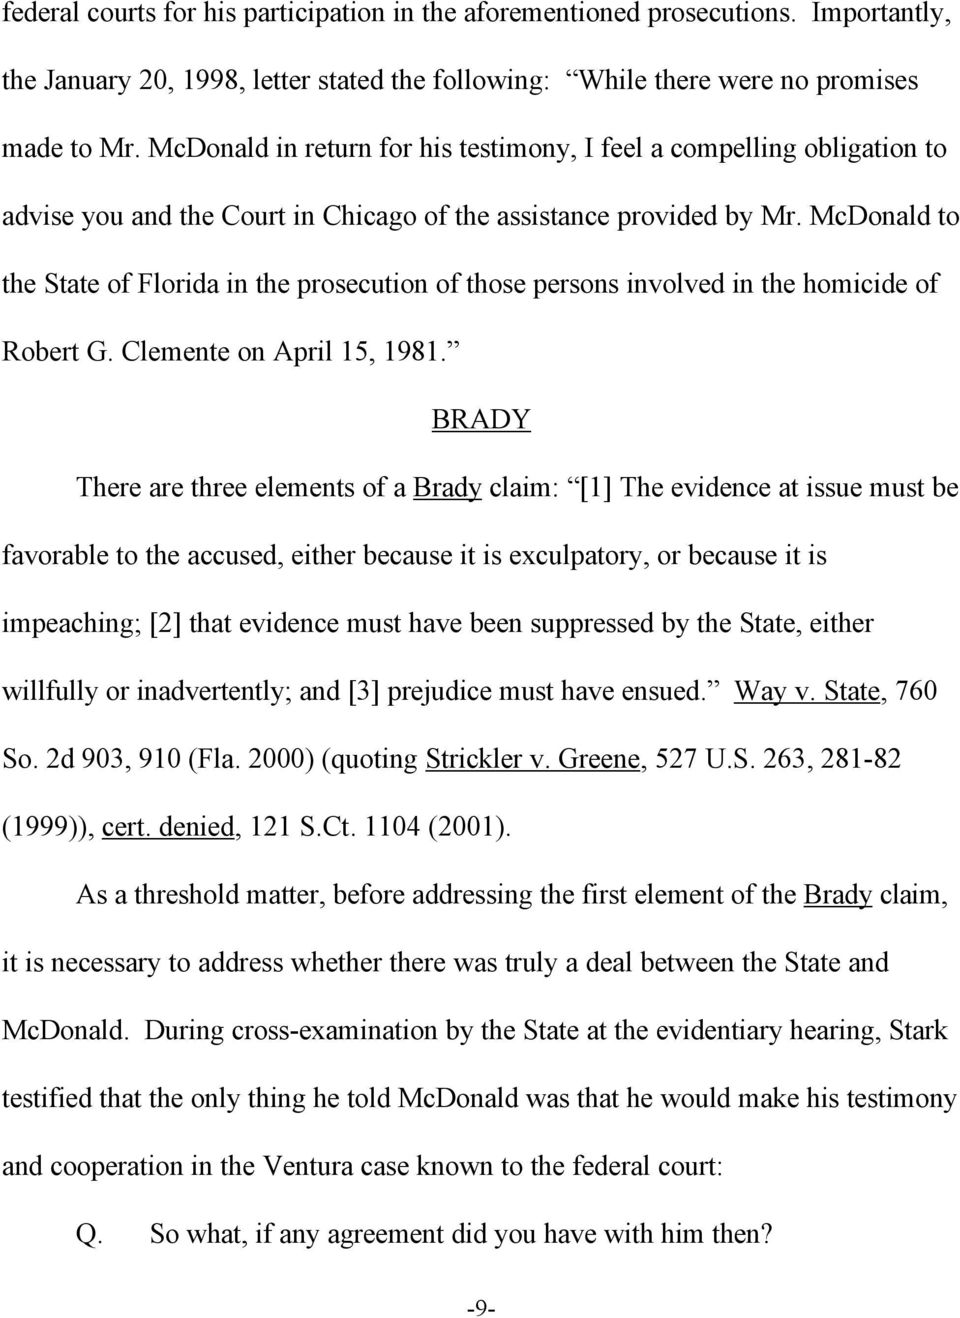 McDonald to the State of Florida in the prosecution of those persons involved in the homicide of Robert G. Clemente on April 15, 1981.